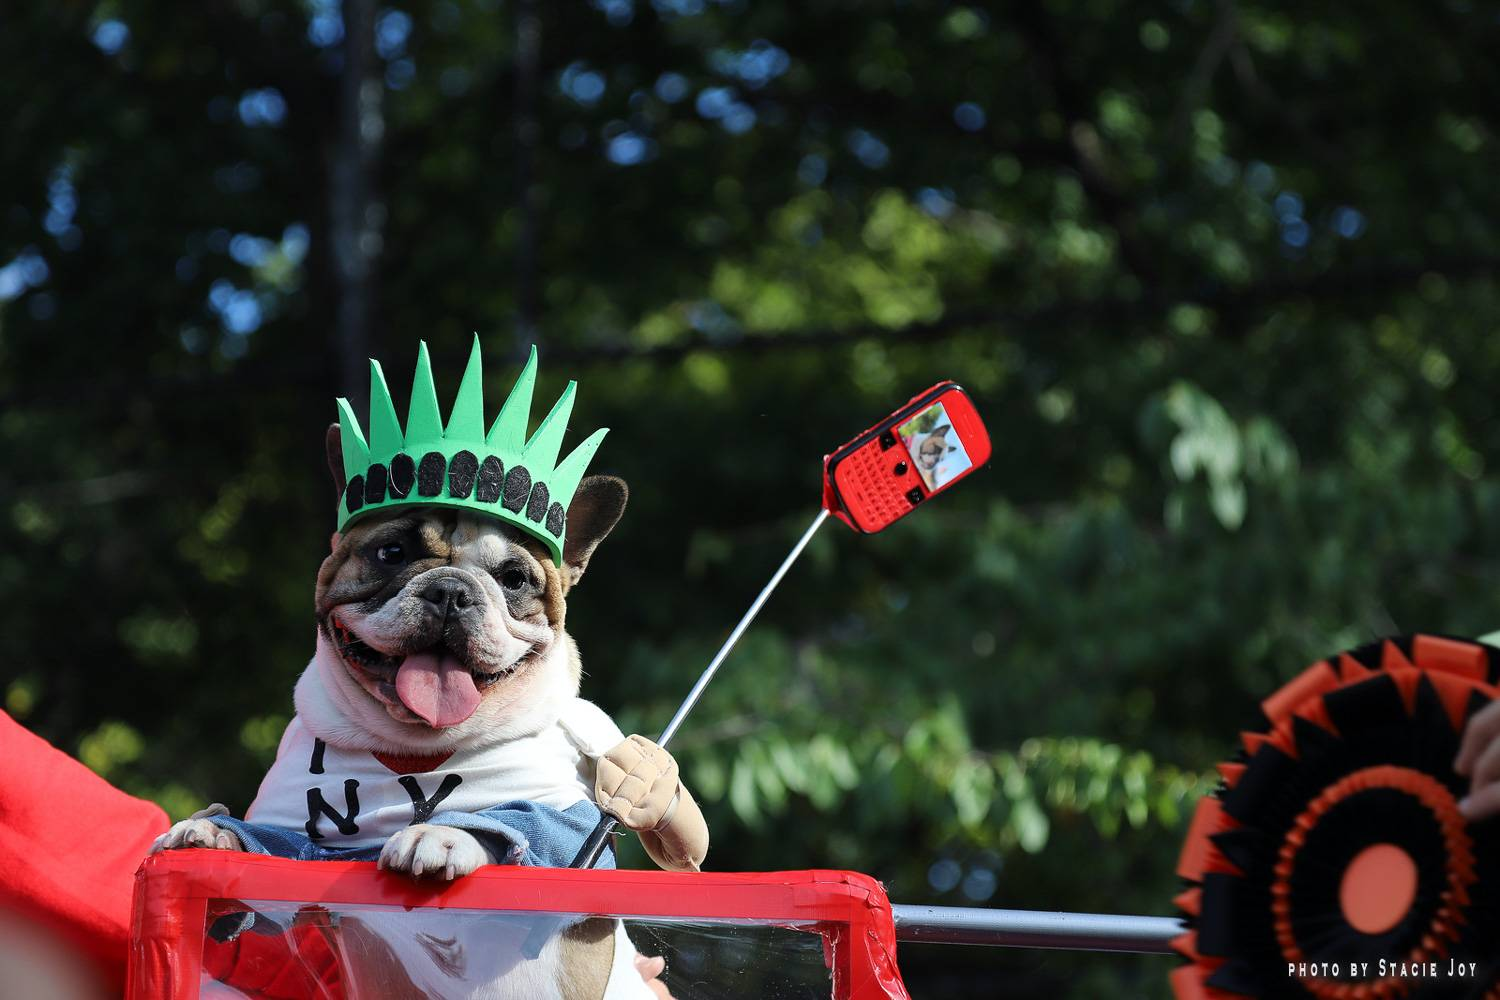 An image of a darling pug dressed in NYC memorabilia during the Tompkins Square Park Halloween Dog Parade.